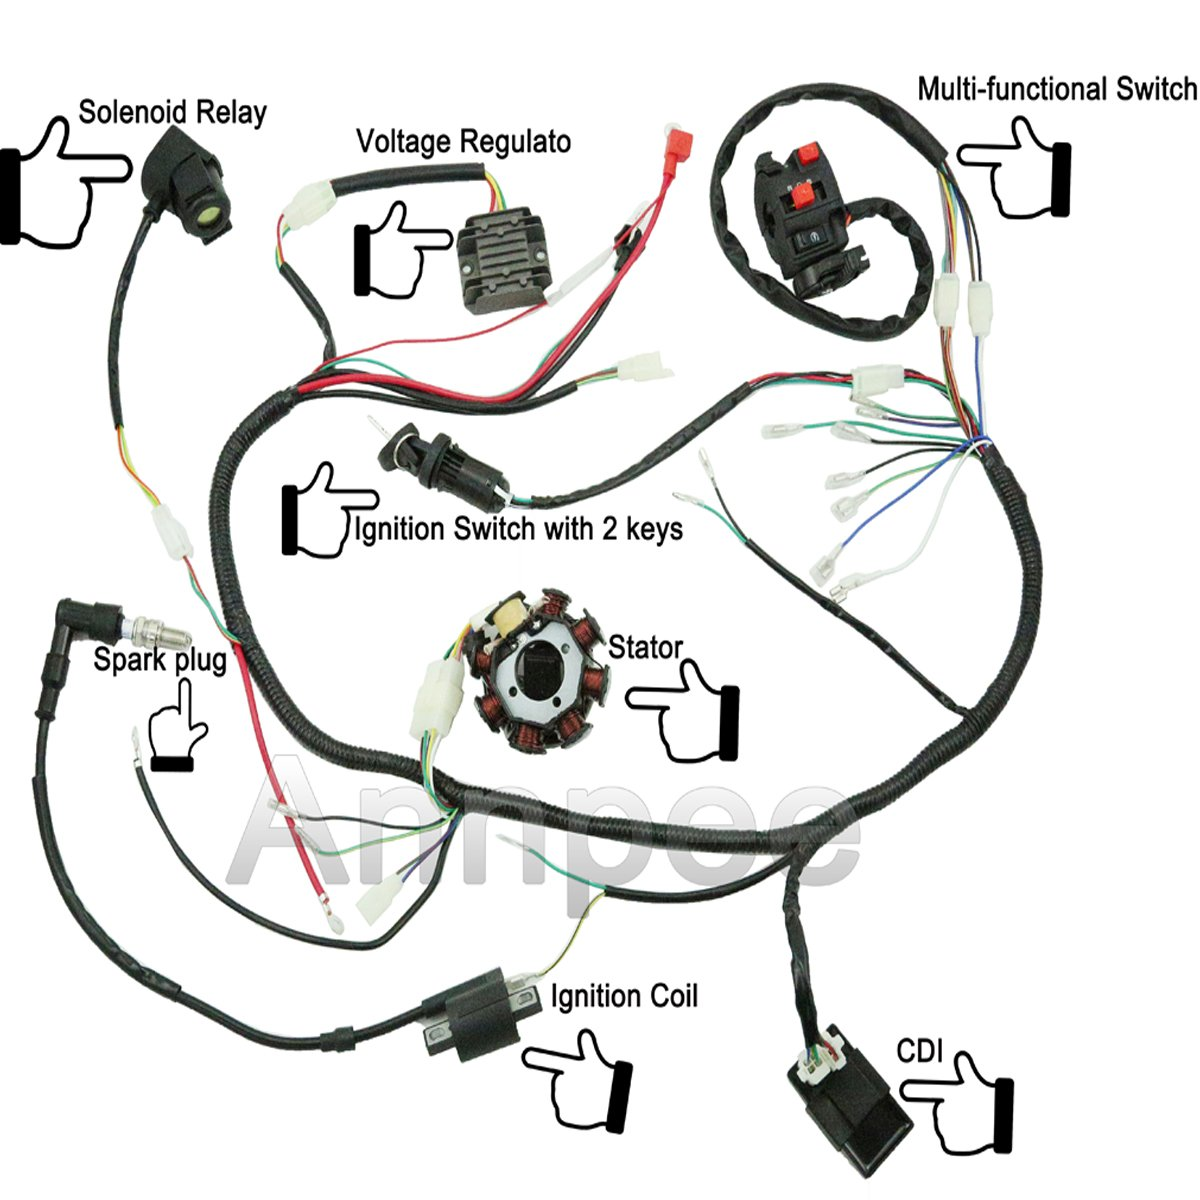 scooter cdi wiring diagram chinese dunebuggy 250cc gy6 engine no Dyna Wiring Diagram amazon jikan annpee plete wiring harness kit wire loom electrics stator coil cdi